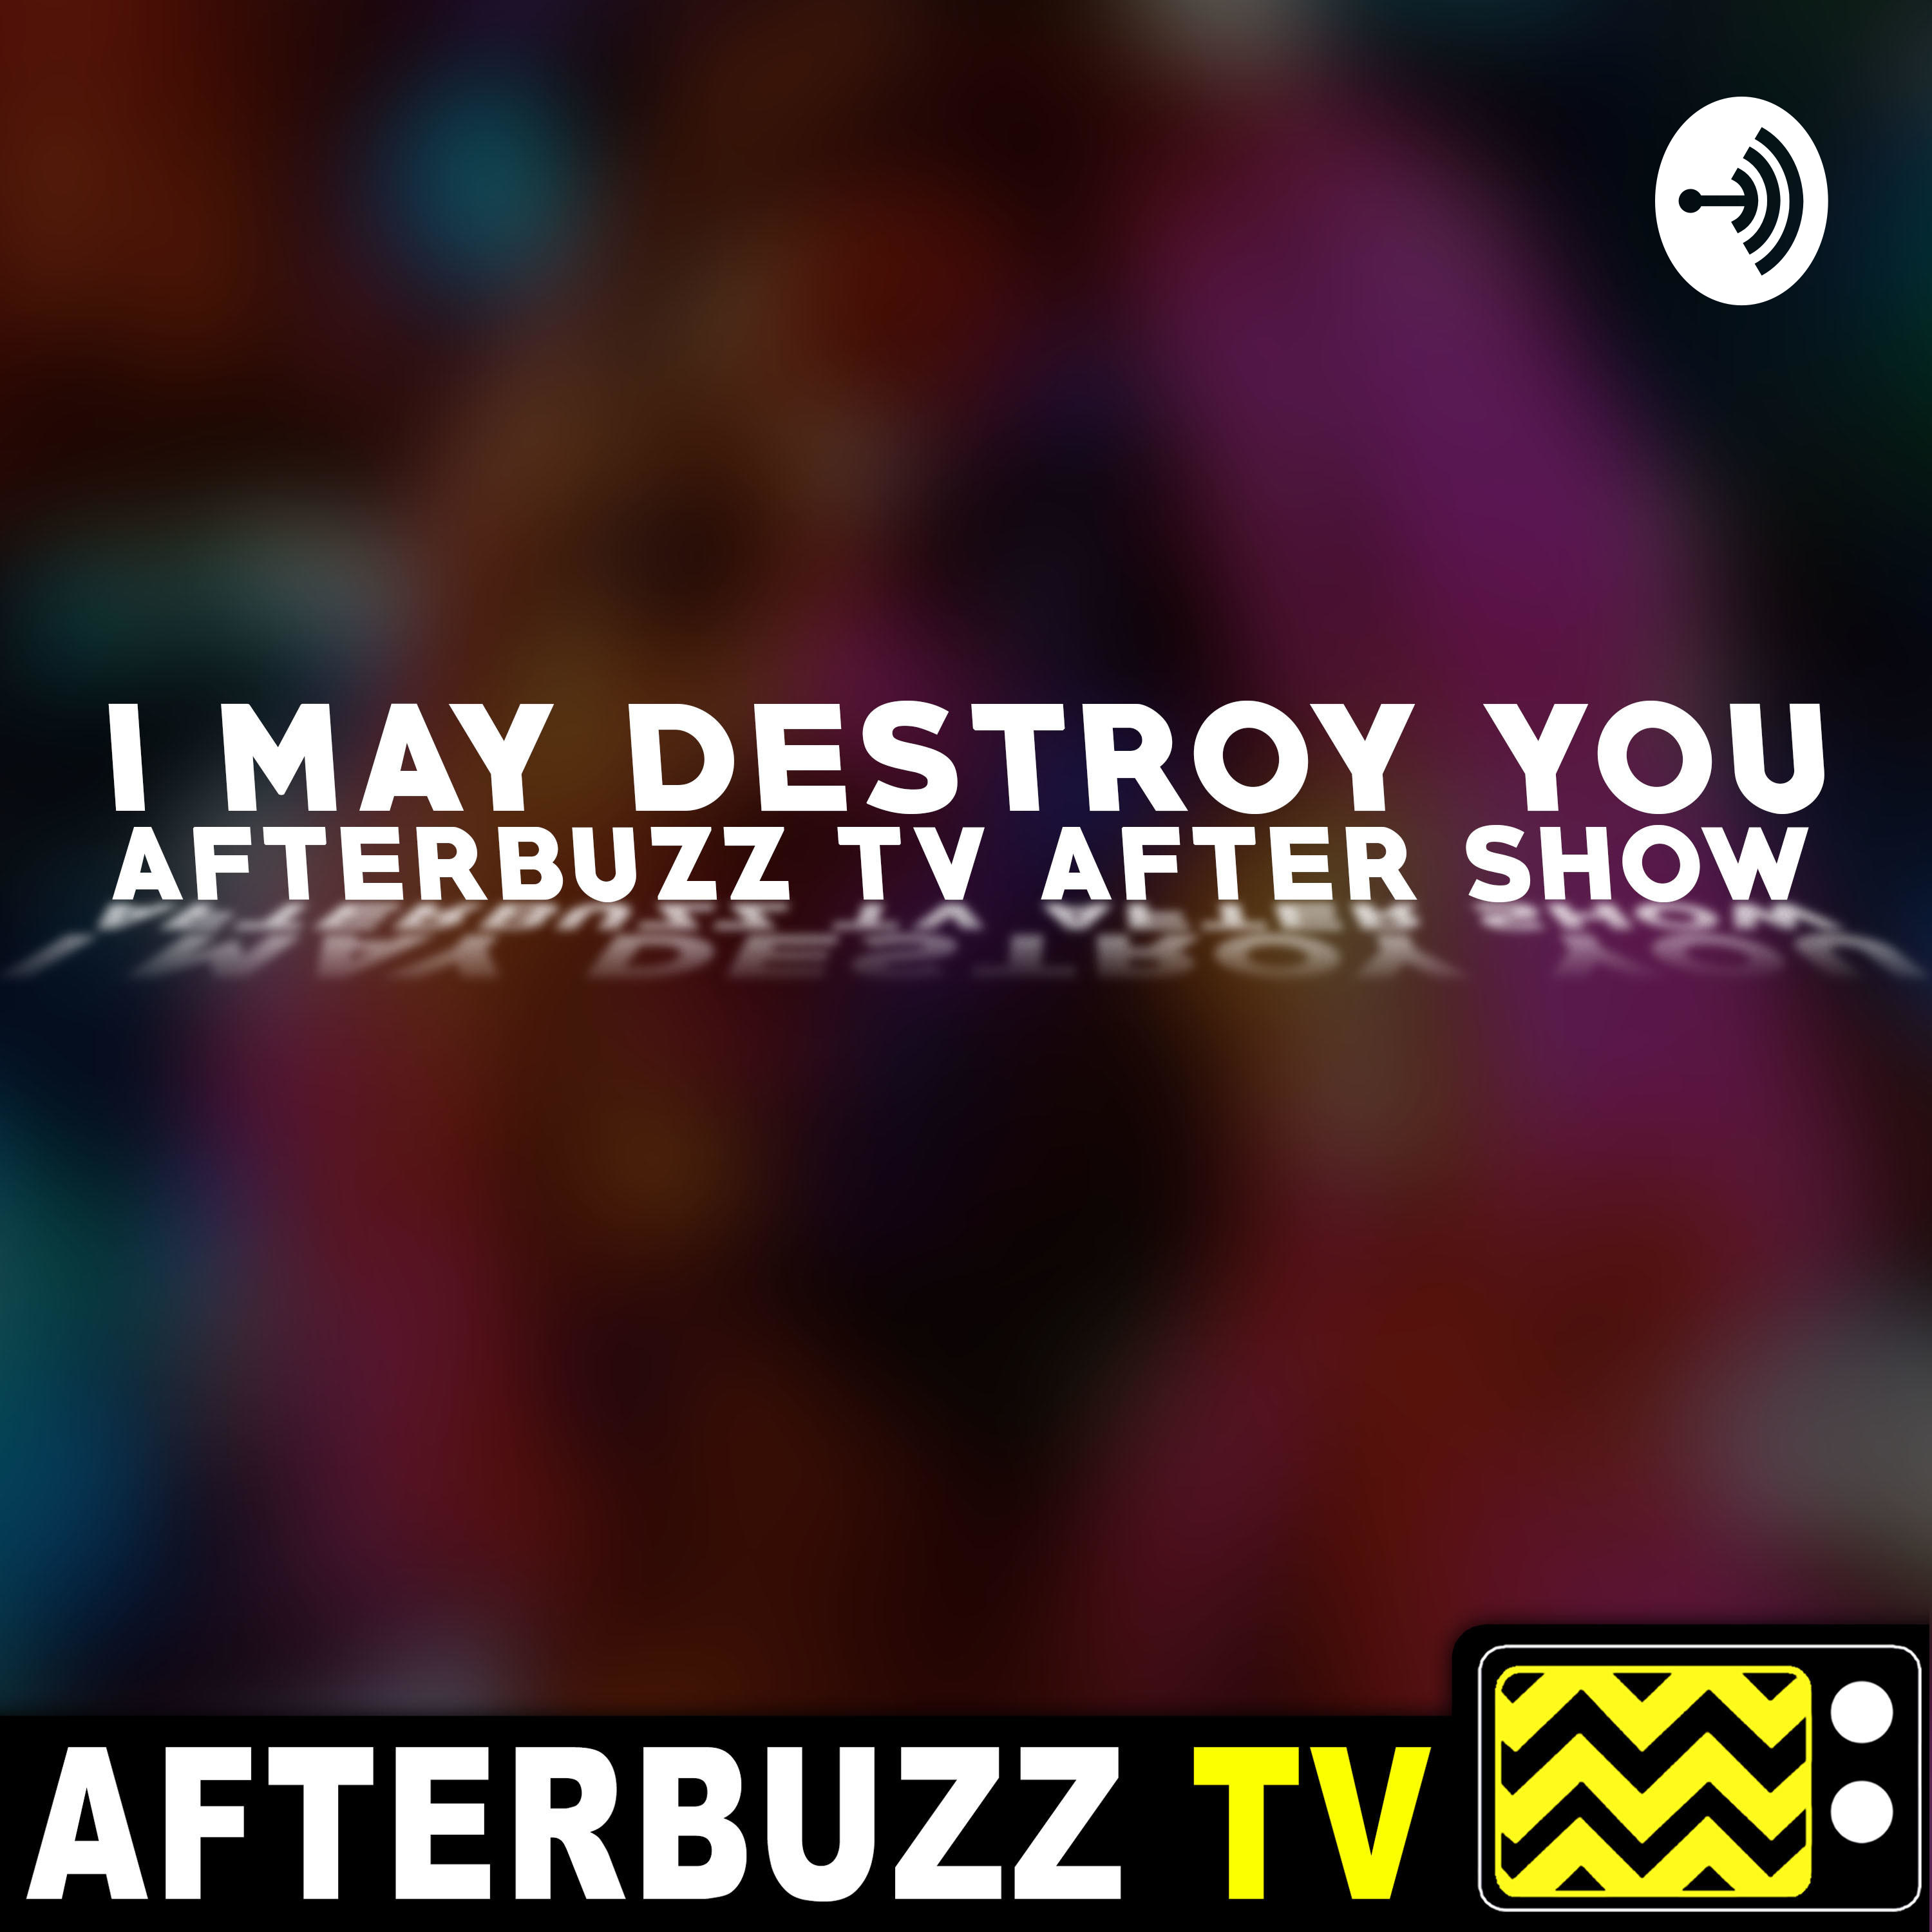 I May Destroy You S1 E5 Recap & After Show: Arabella is starting to see everyone's true colors